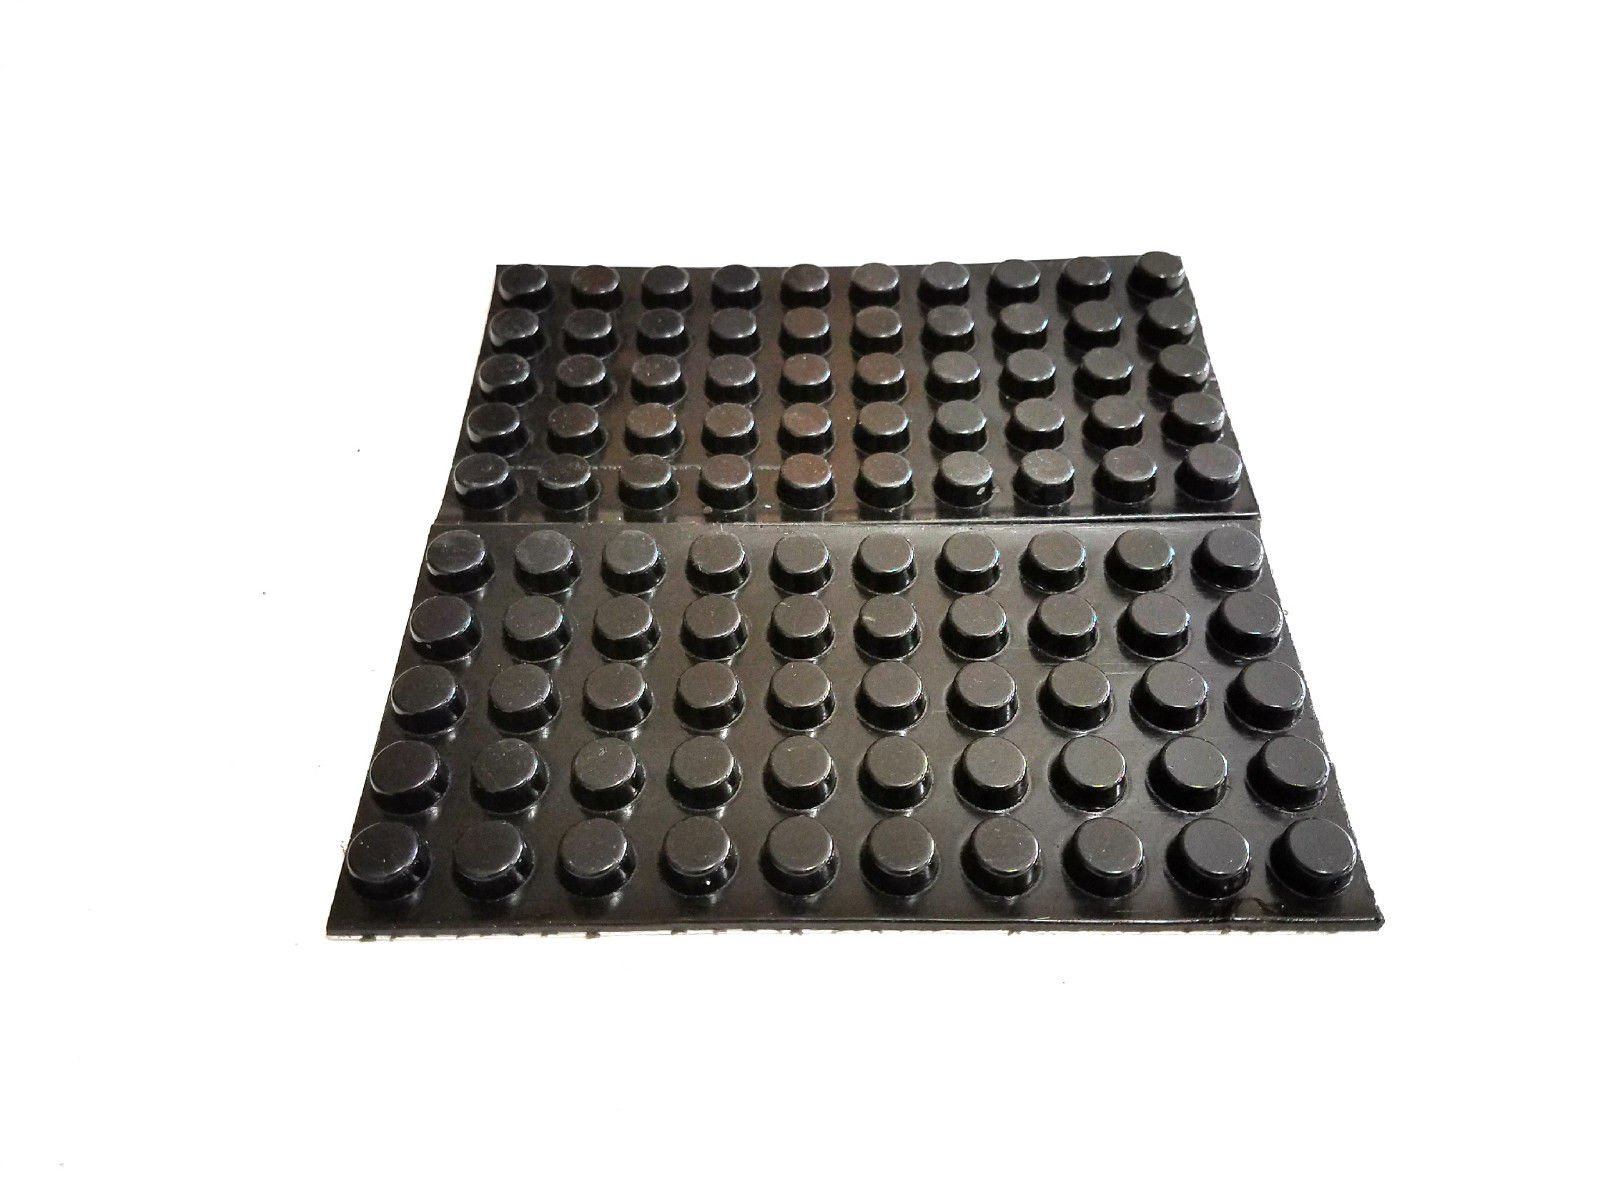 100 Black Self Adhesive Round Rubber Bumper Feet 12.7mm (1/2'') x 6.4mm (1/4'')